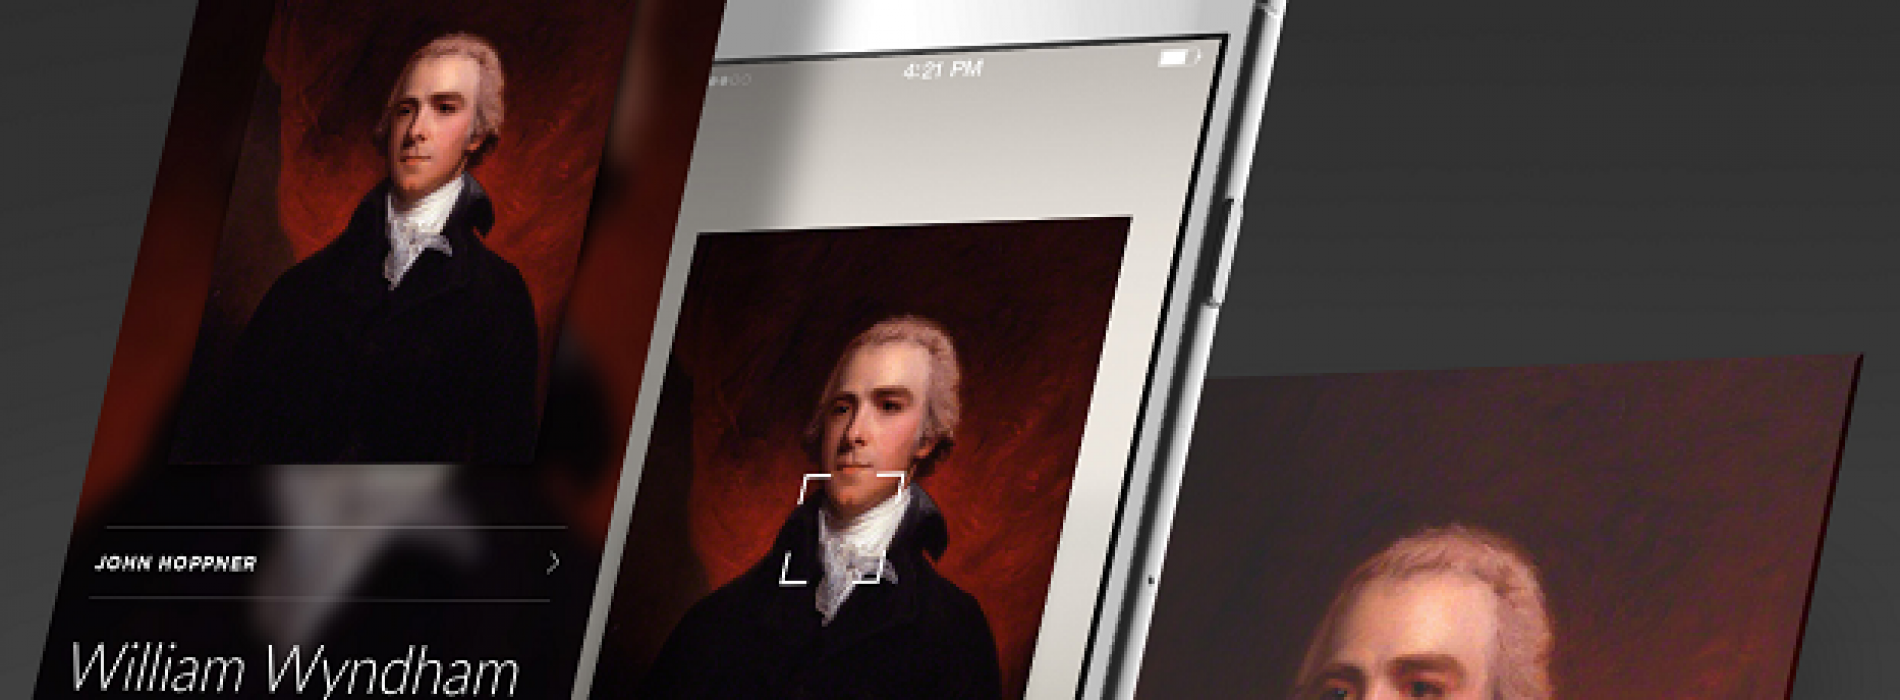 A New App Can Identify Artworks and Tell You About Them